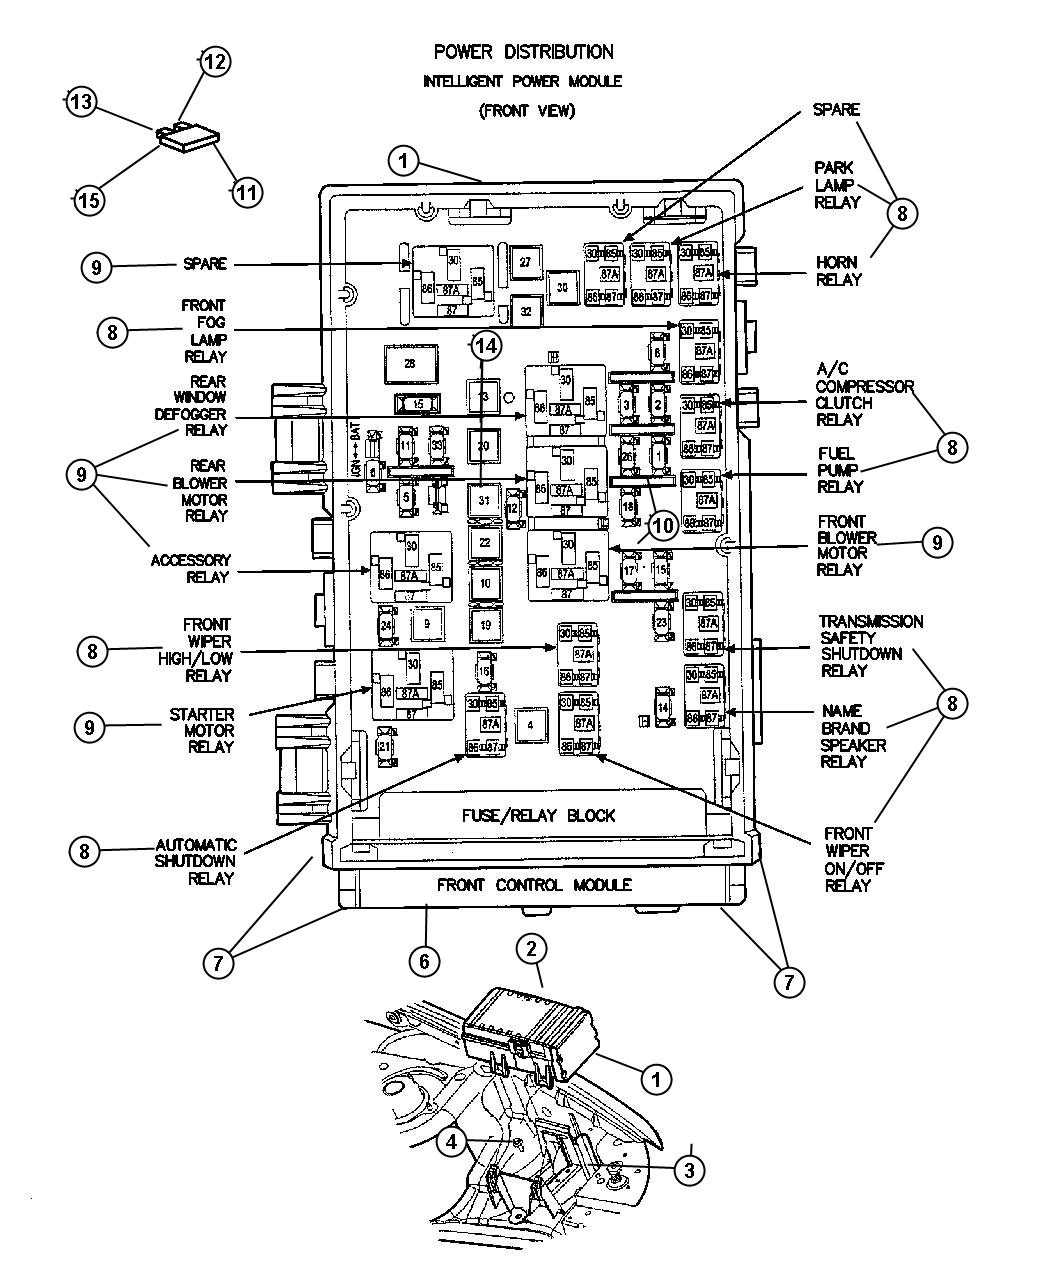 hight resolution of 2001 chrysler voyager fuse box diagram 2001 get free 2003 chrysler town and country fuse box